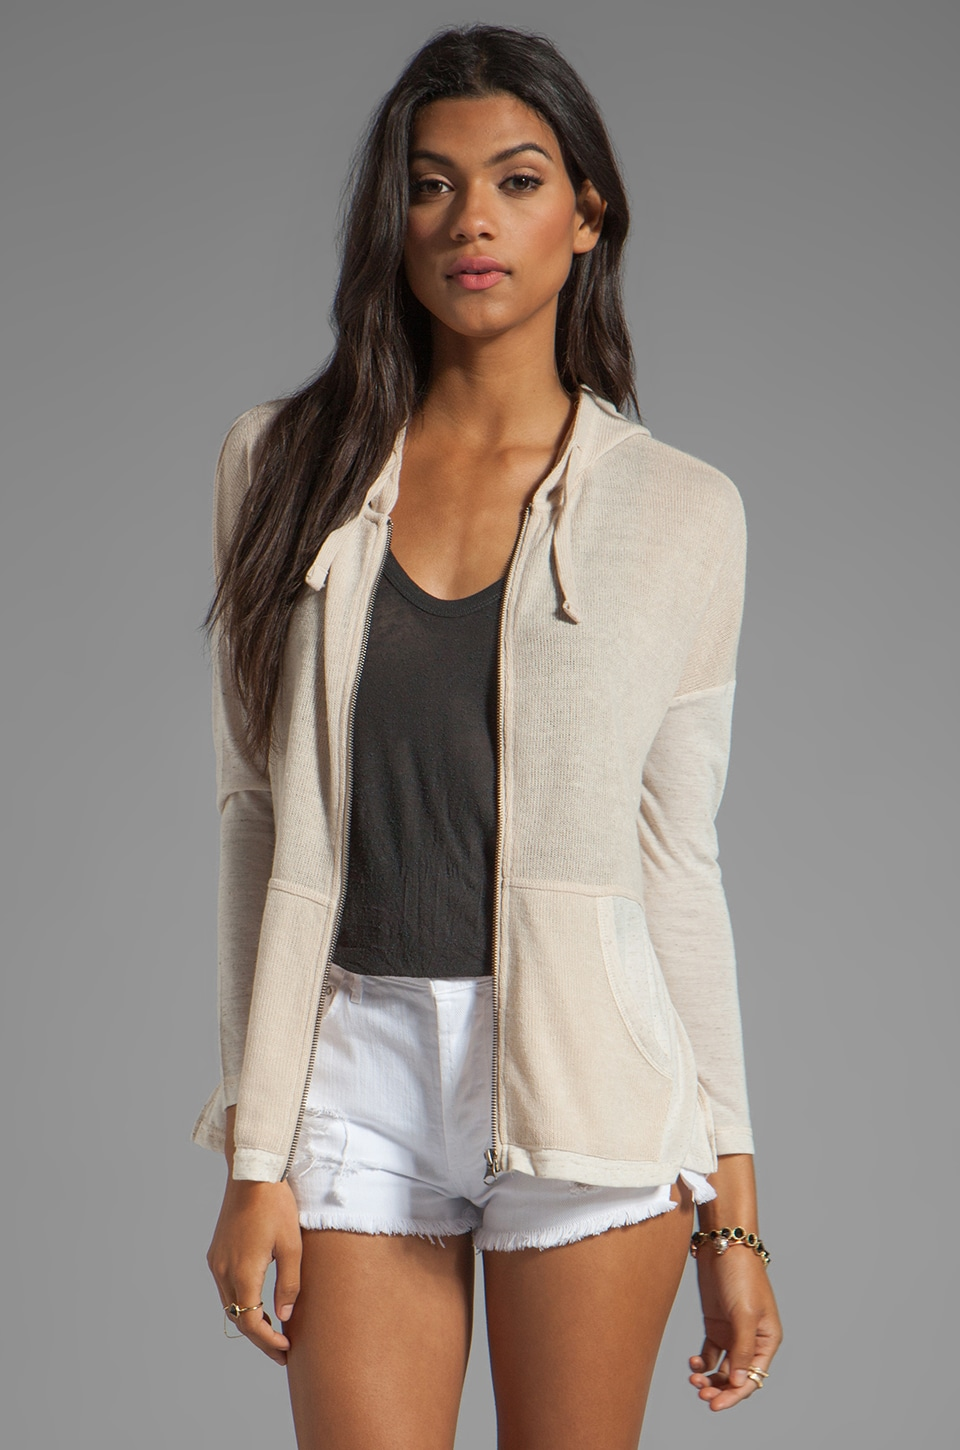 BB Dakota Rolfe Mesh Knit & Heather Jersey Hoodie in Whitecap Beige